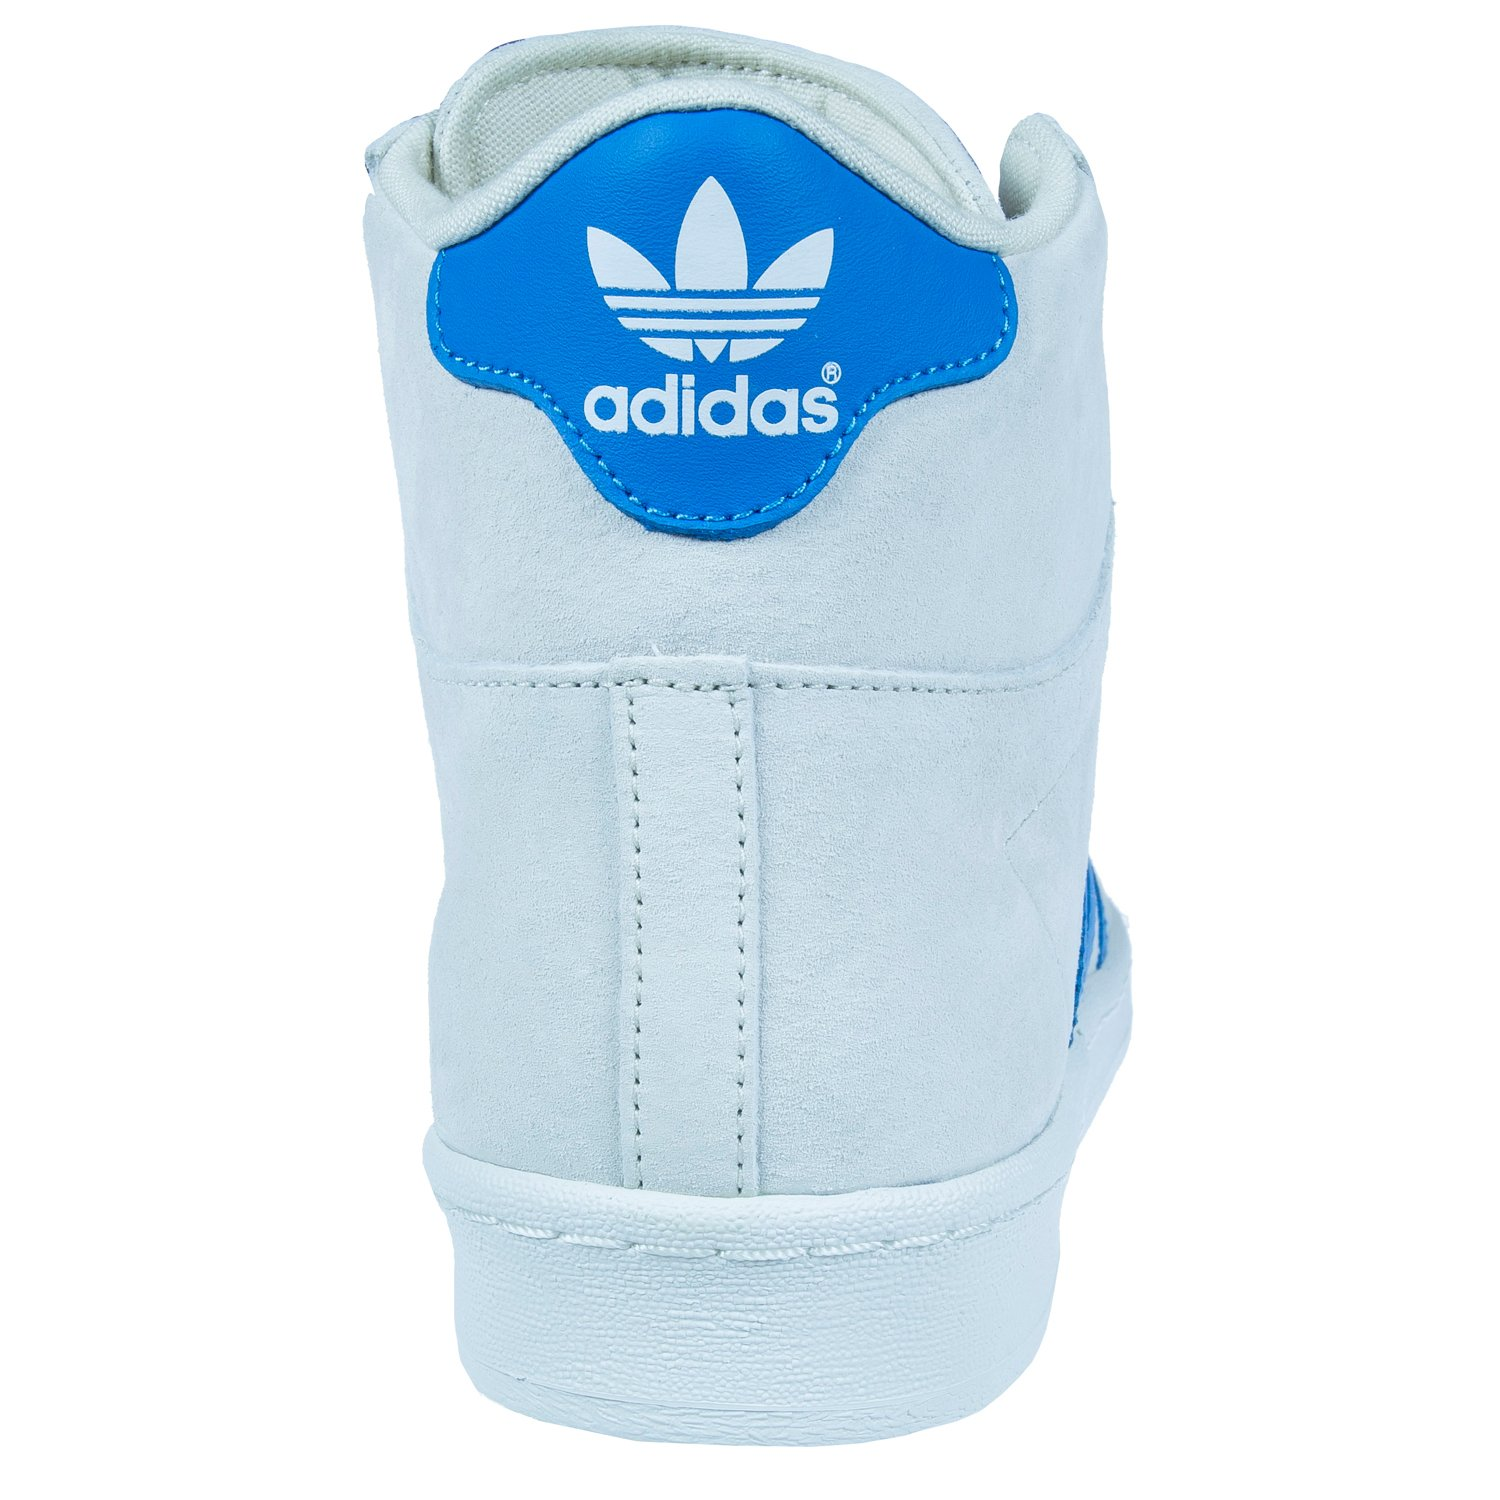 adidas Originals Jabbar Mid Mens Suede High Top Trainers - Off White -  8.5UK  Amazon.co.uk  Shoes   Bags a0bf67d8b